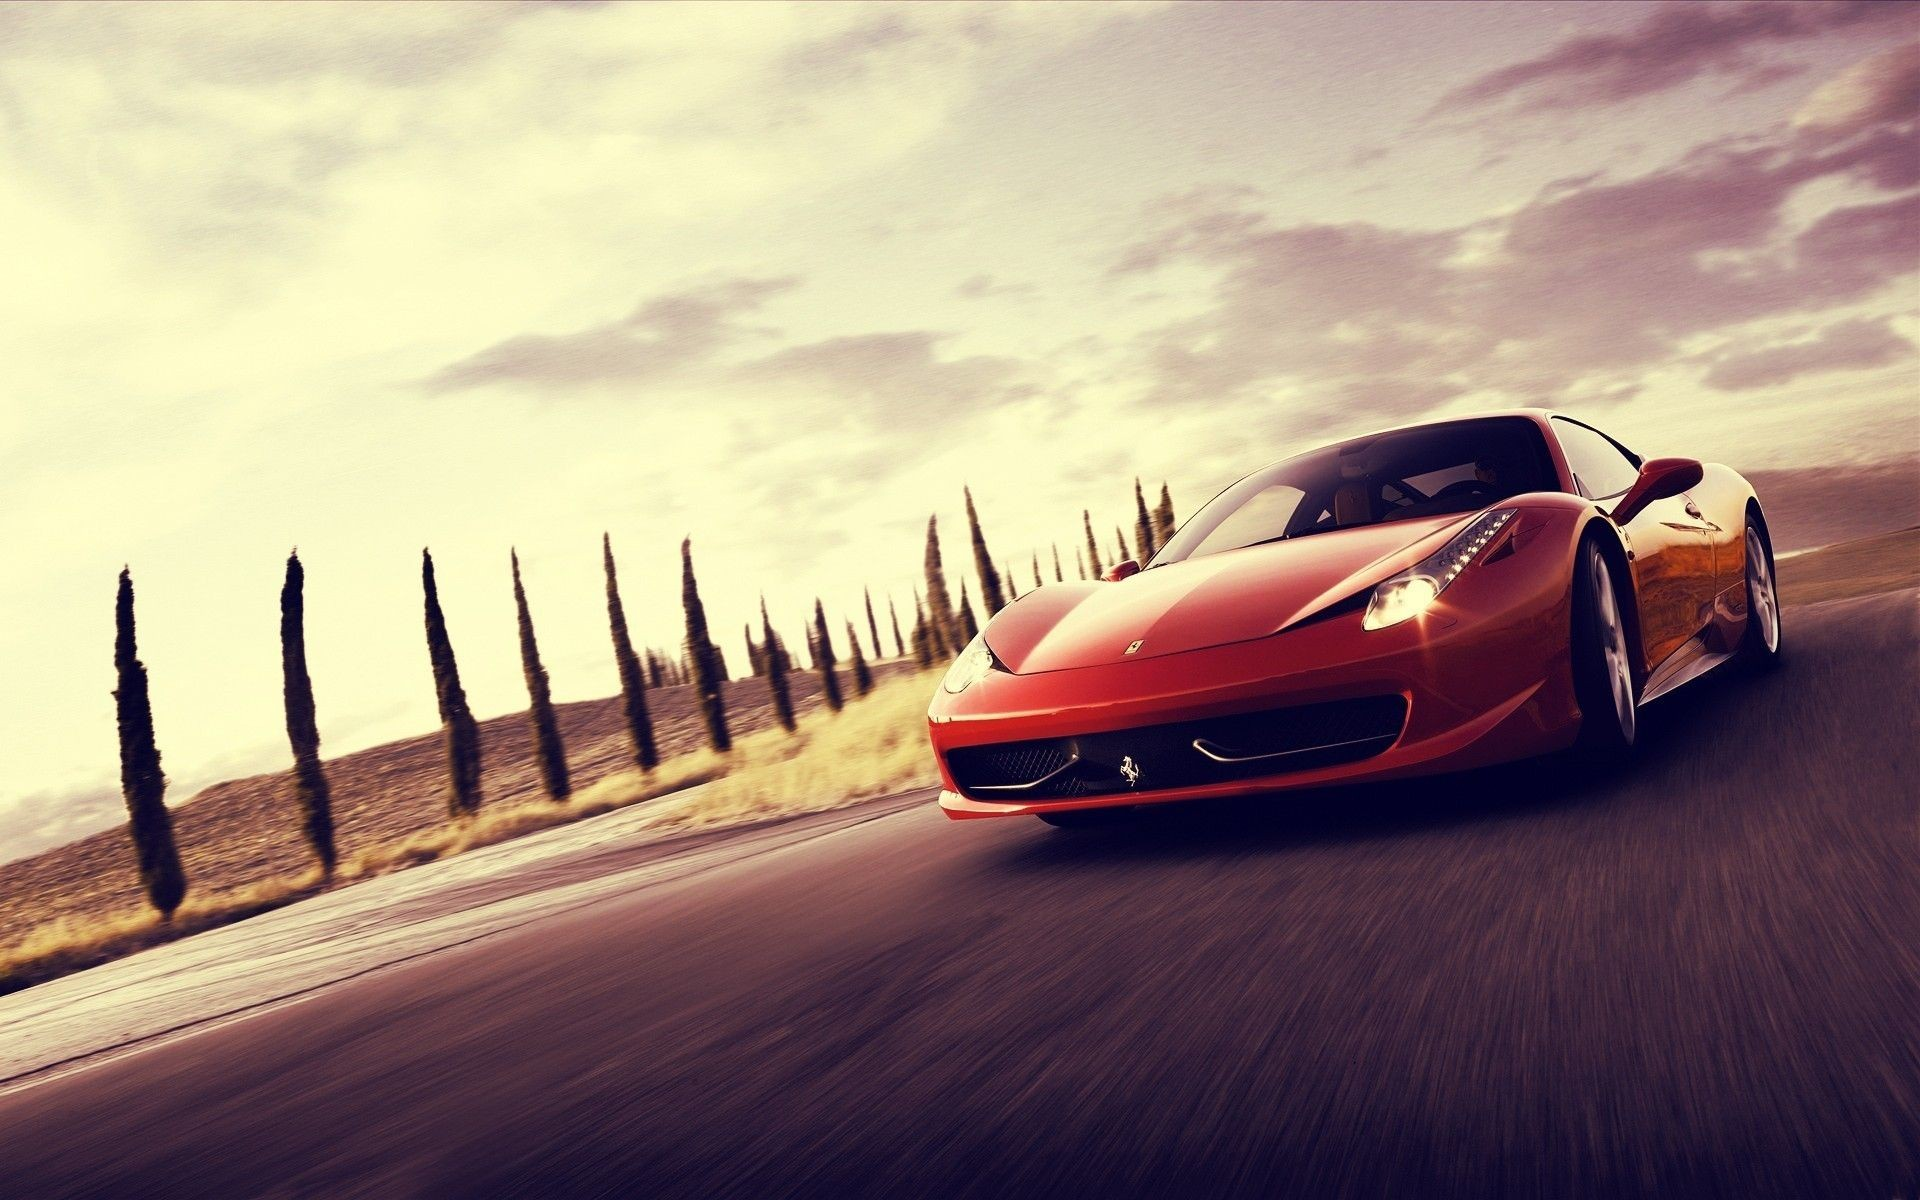 Cars Wallpaper Download Free Awesome Full Hd Backgrounds For